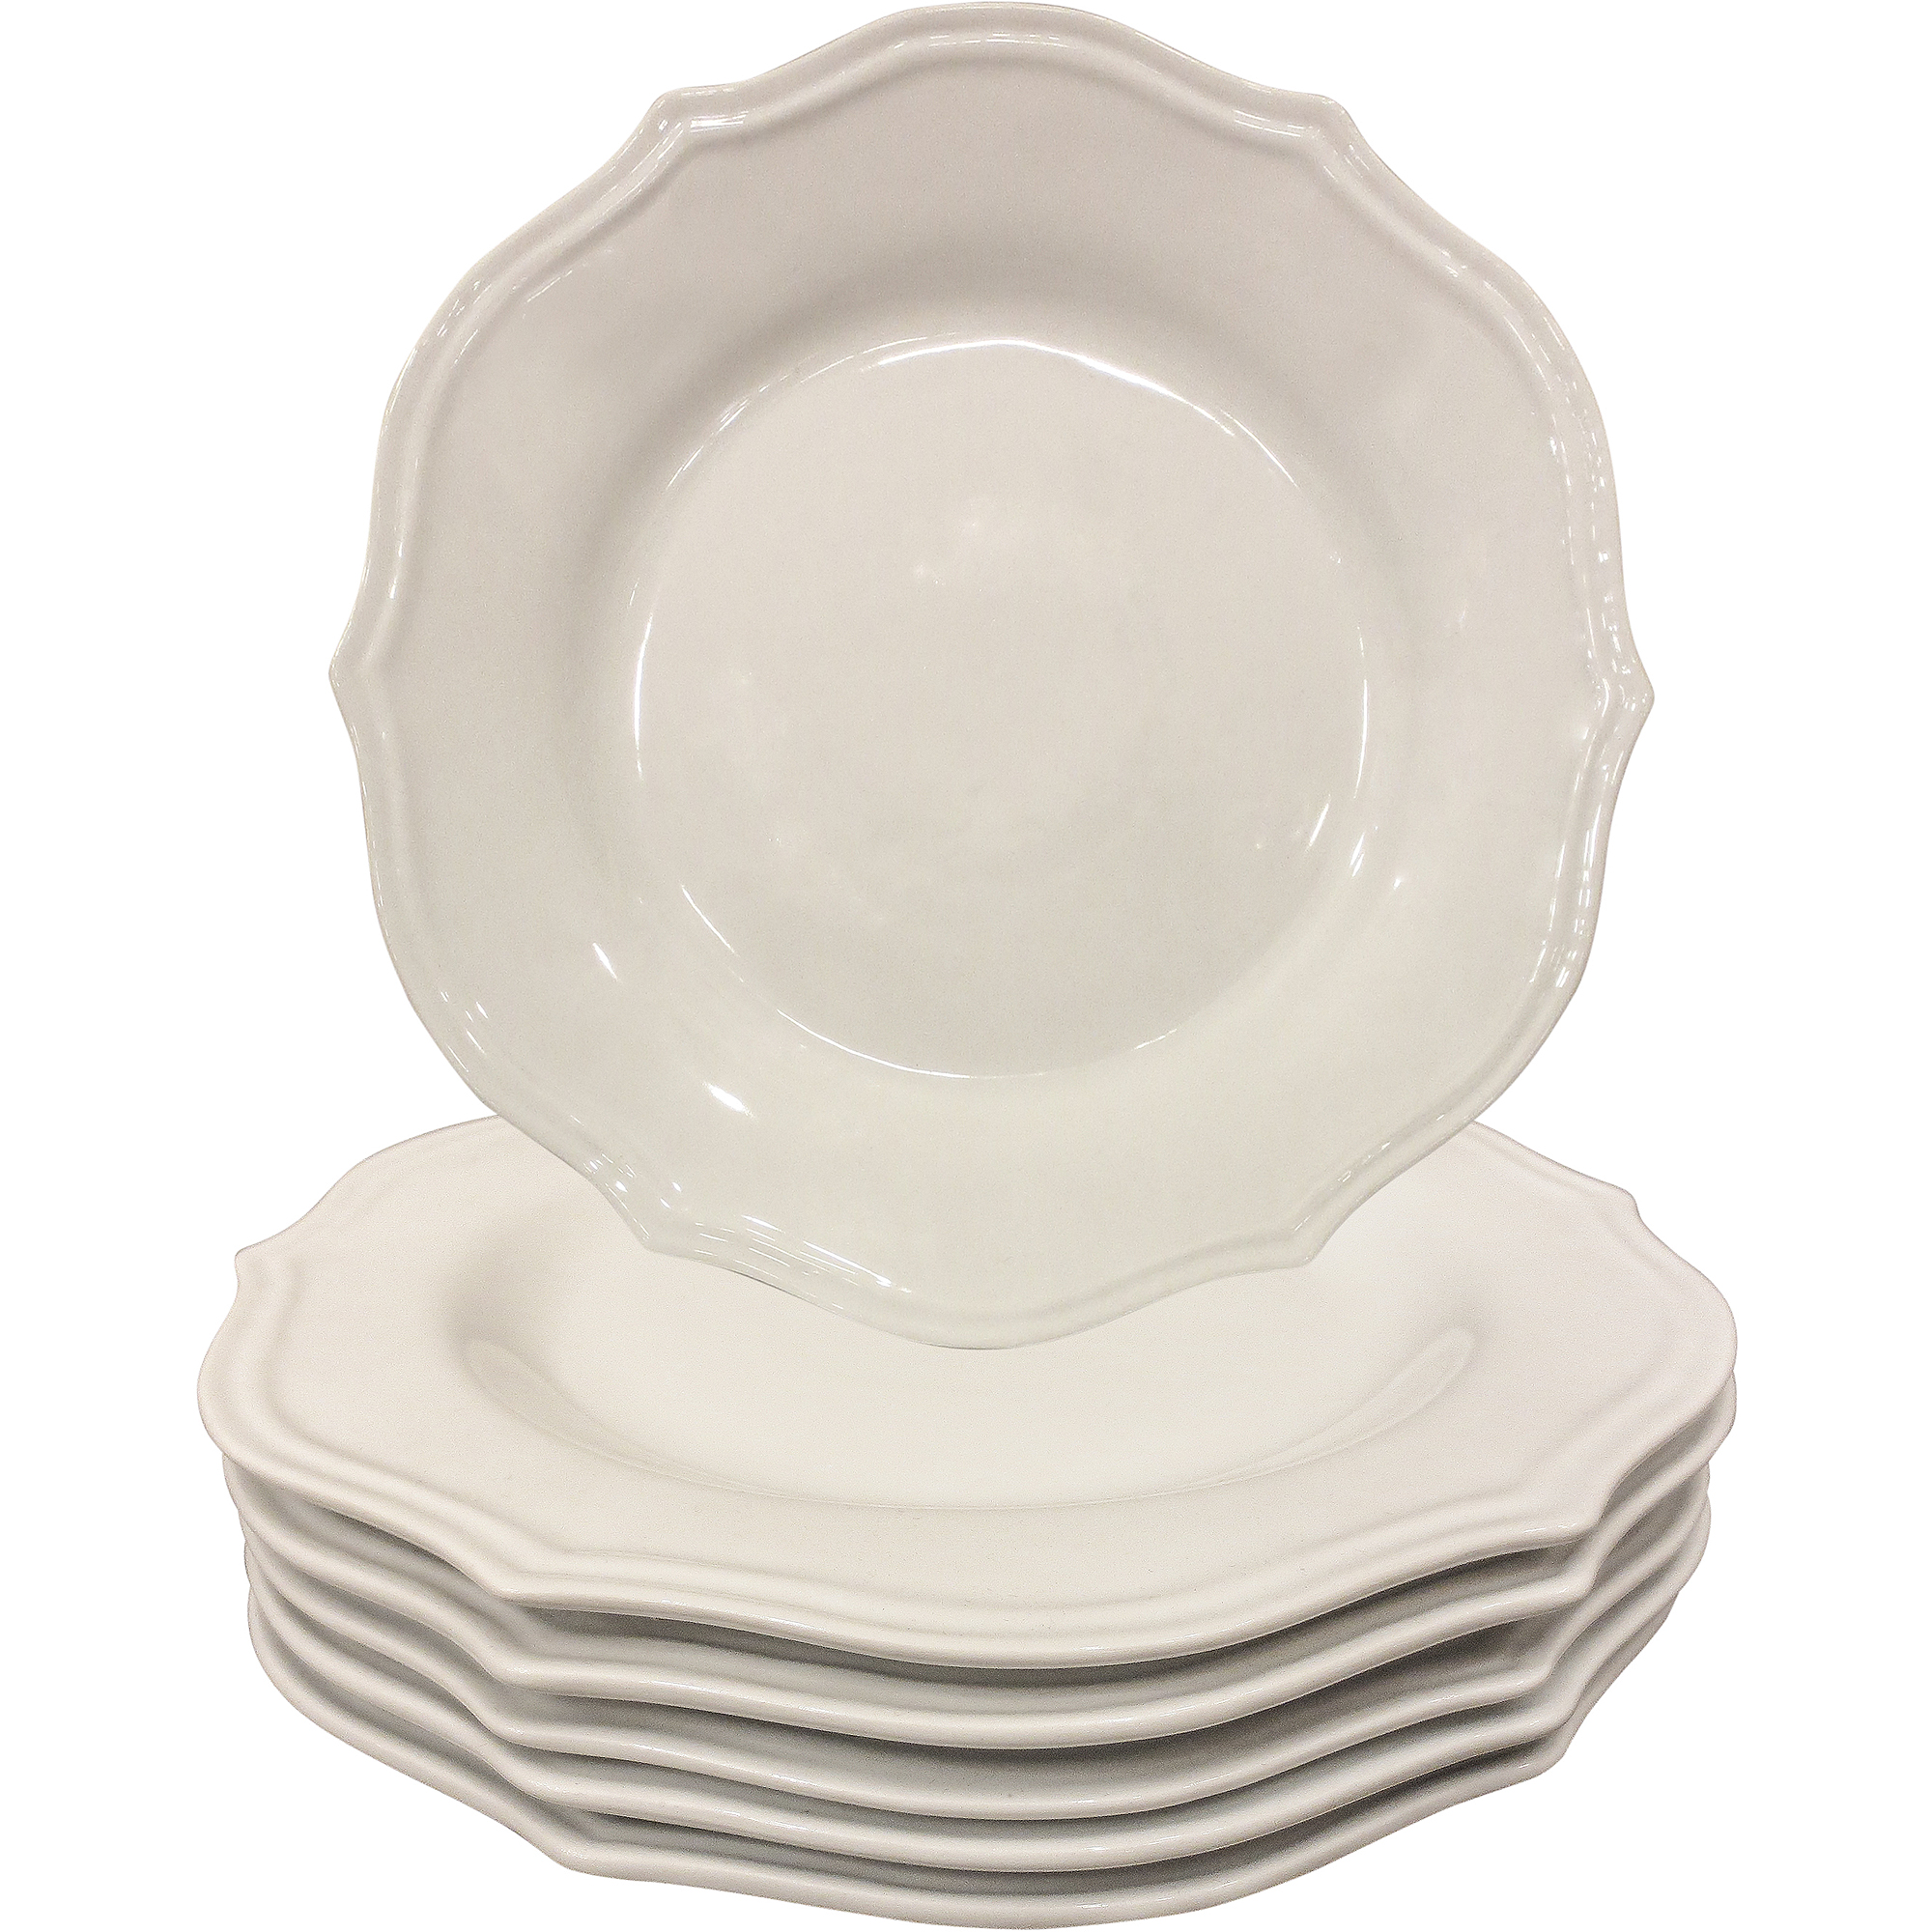 better homes and gardens scalloped dinner plates white set of 6 - Square Dinner Plates